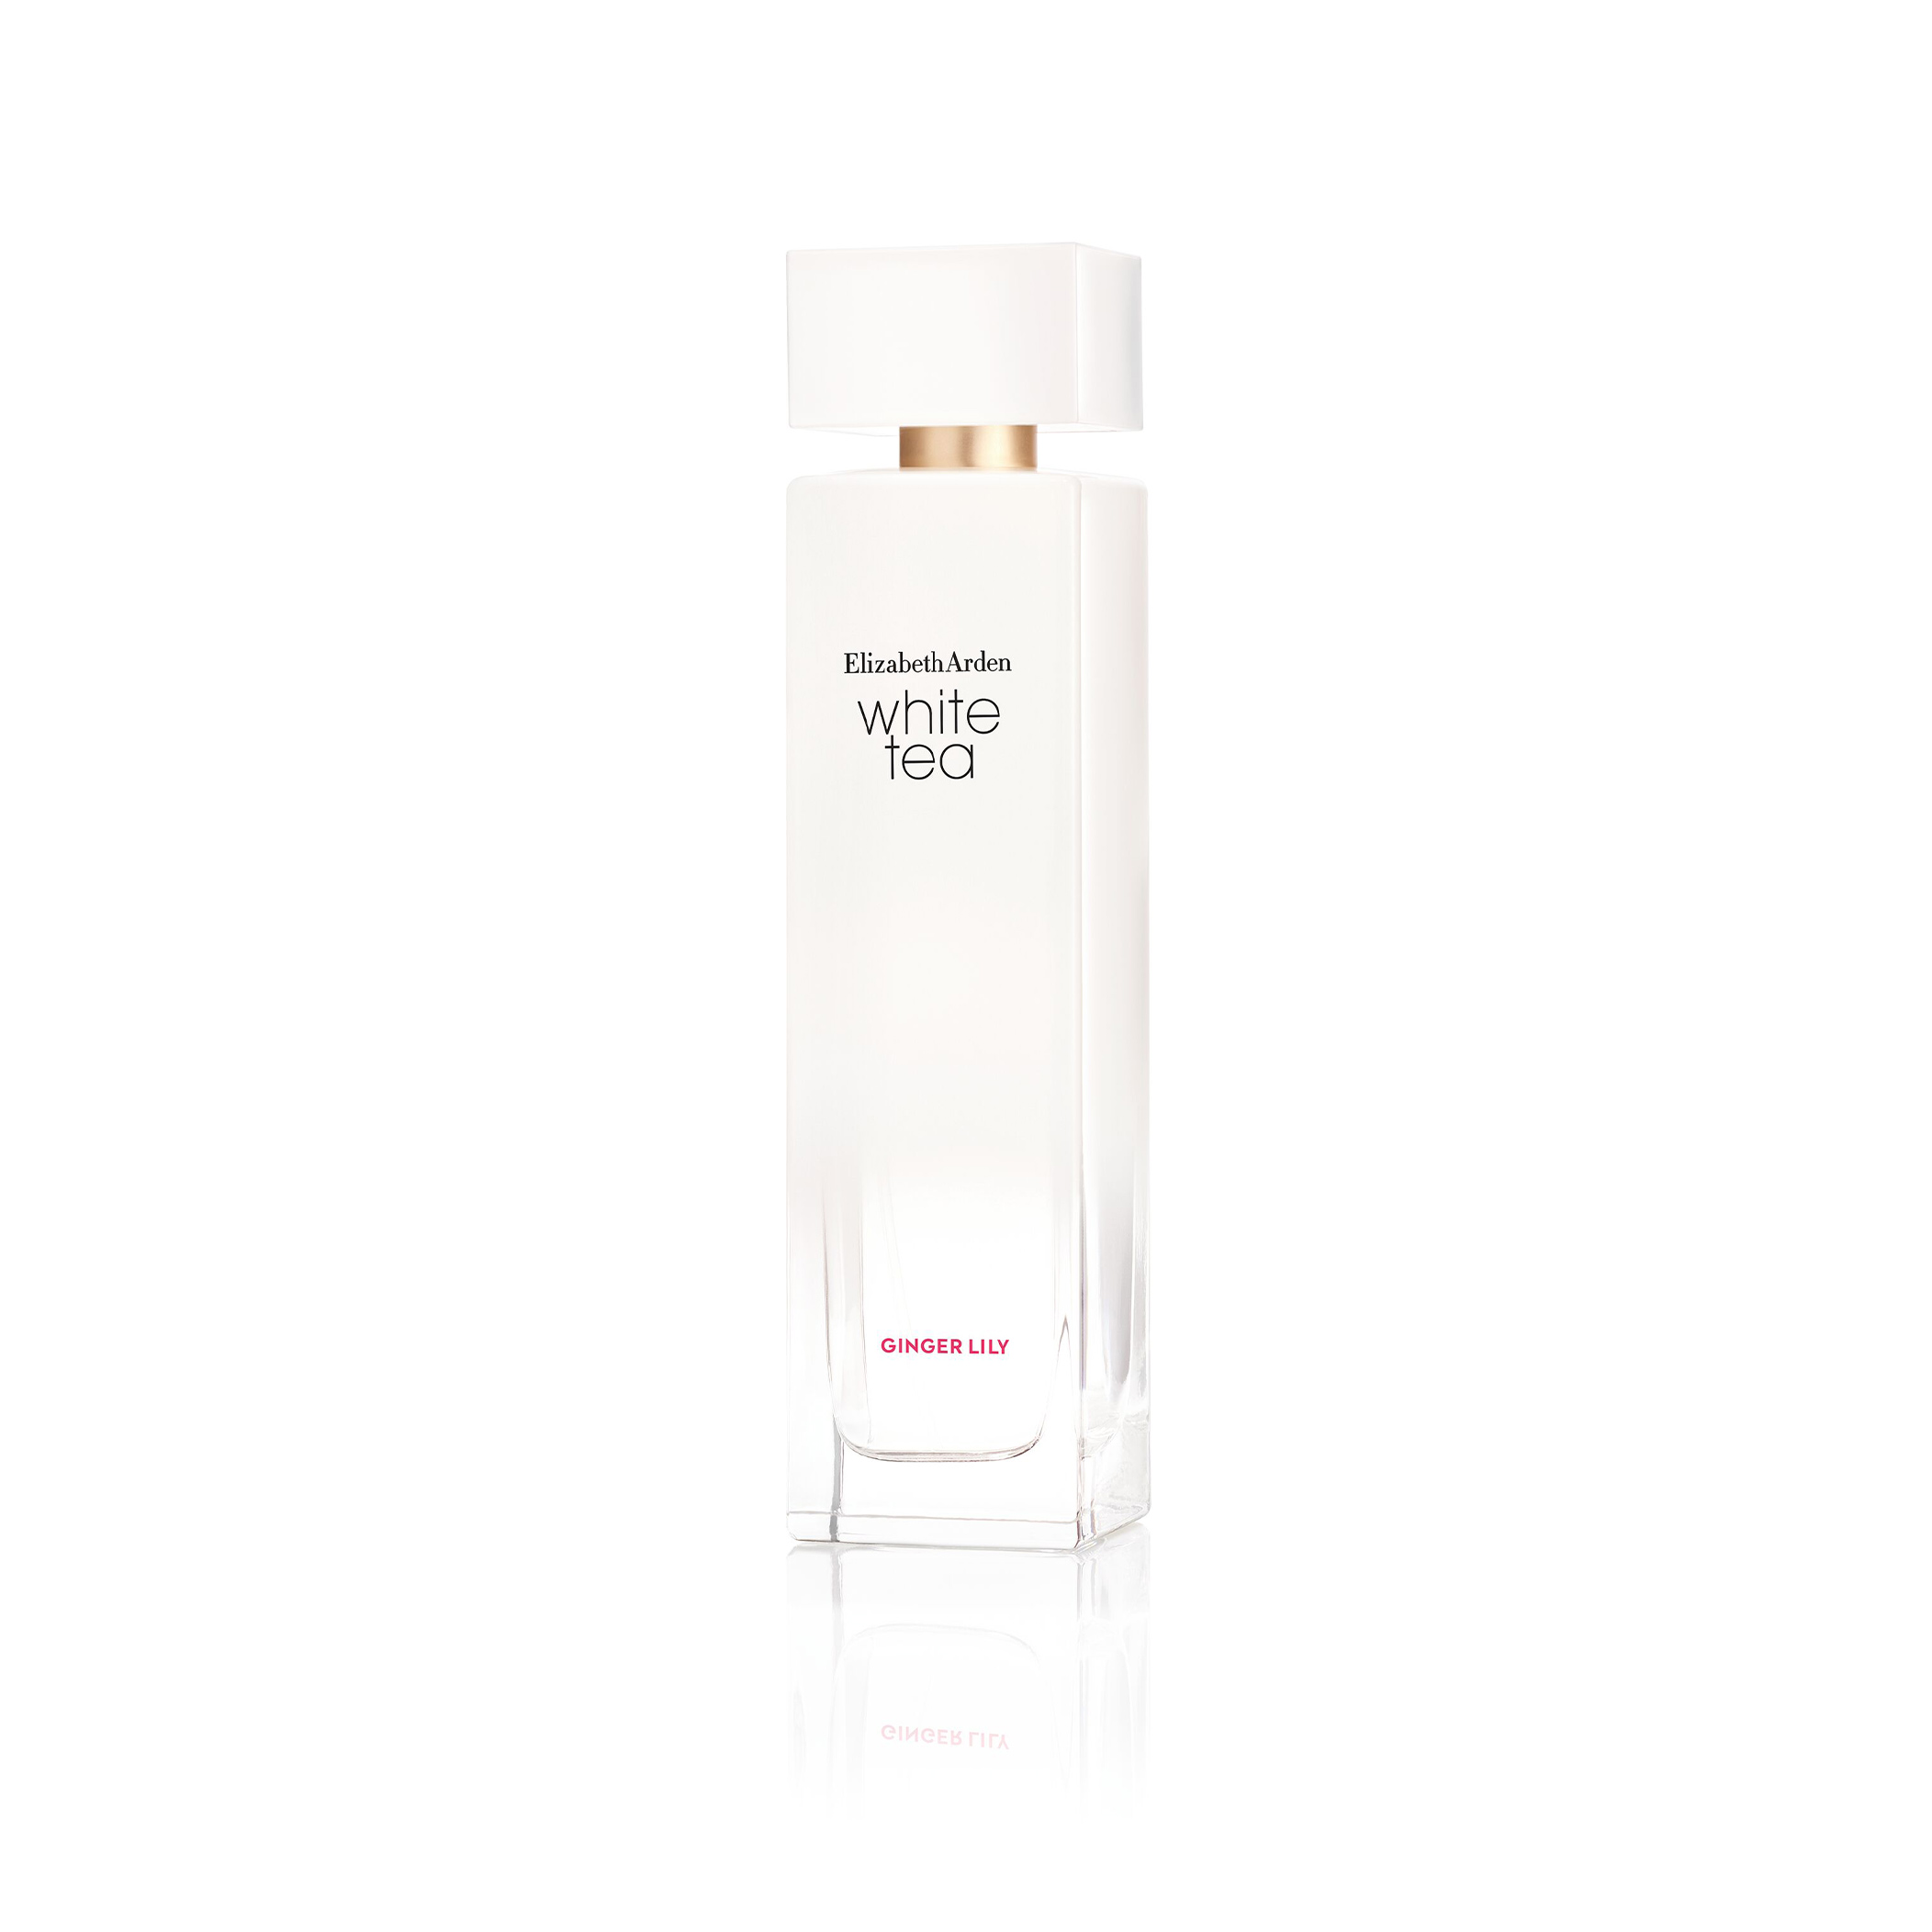 Elizabeth Arden White Tea Ginger Lily Eau de Toilette Spray, , large